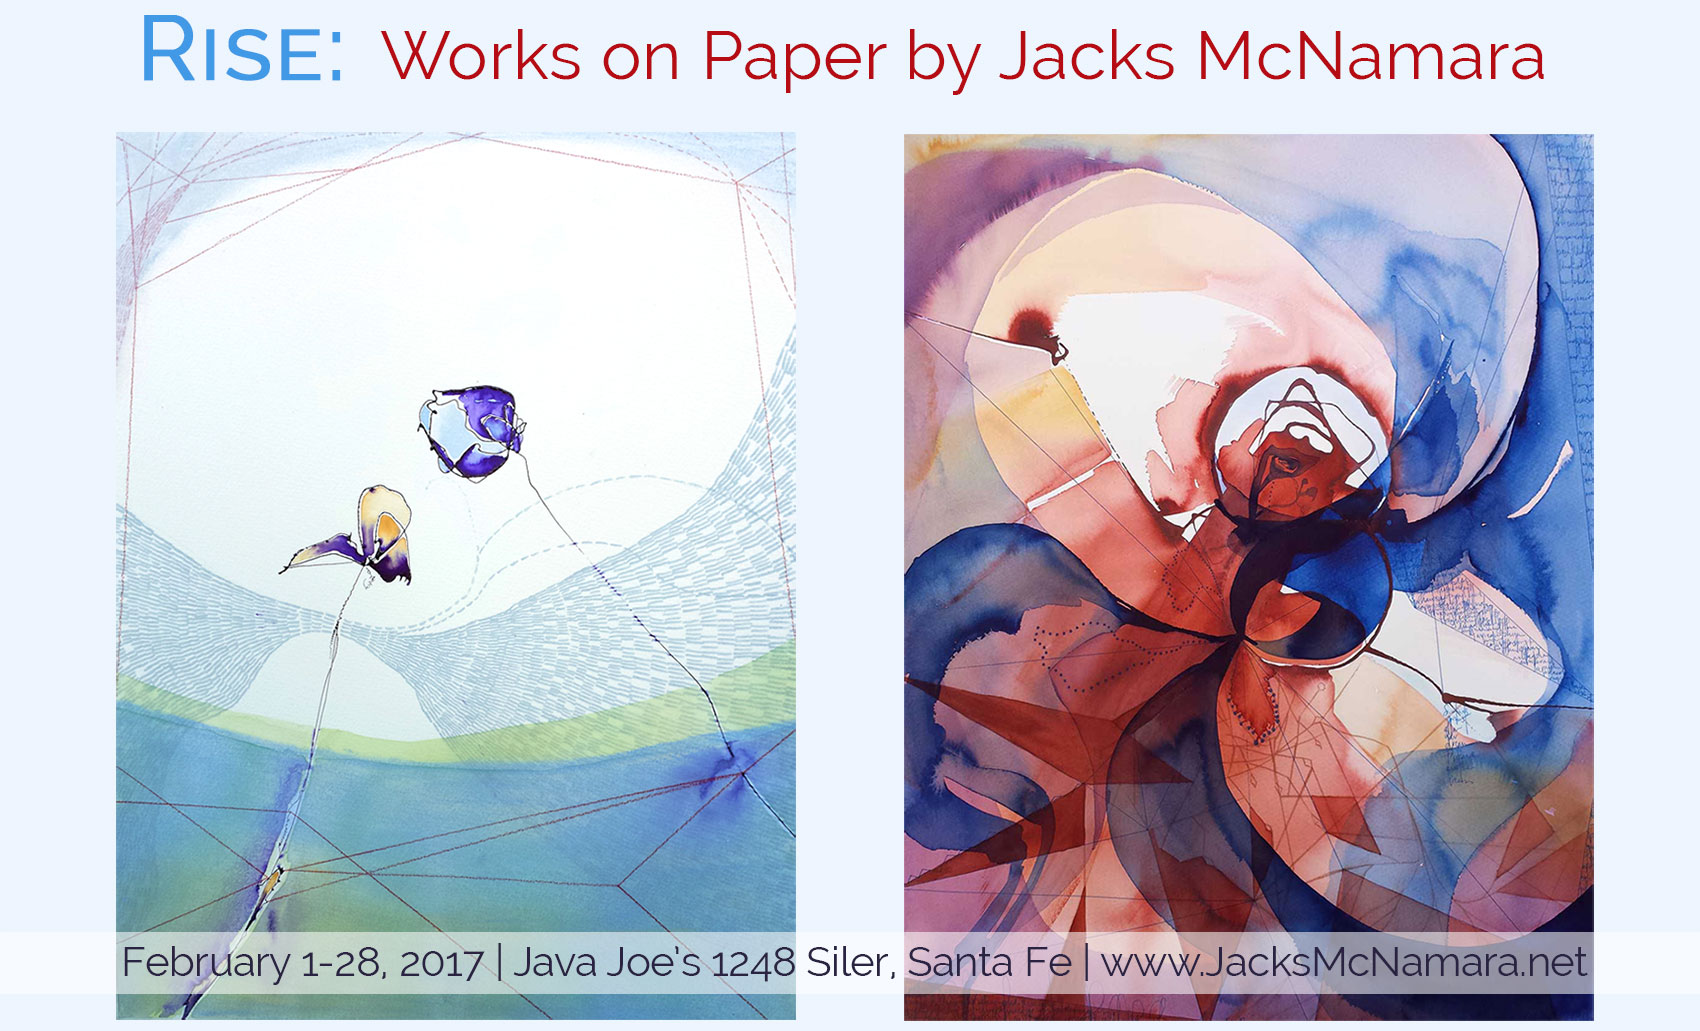 Rise Works on Paper by Jacks McNamara